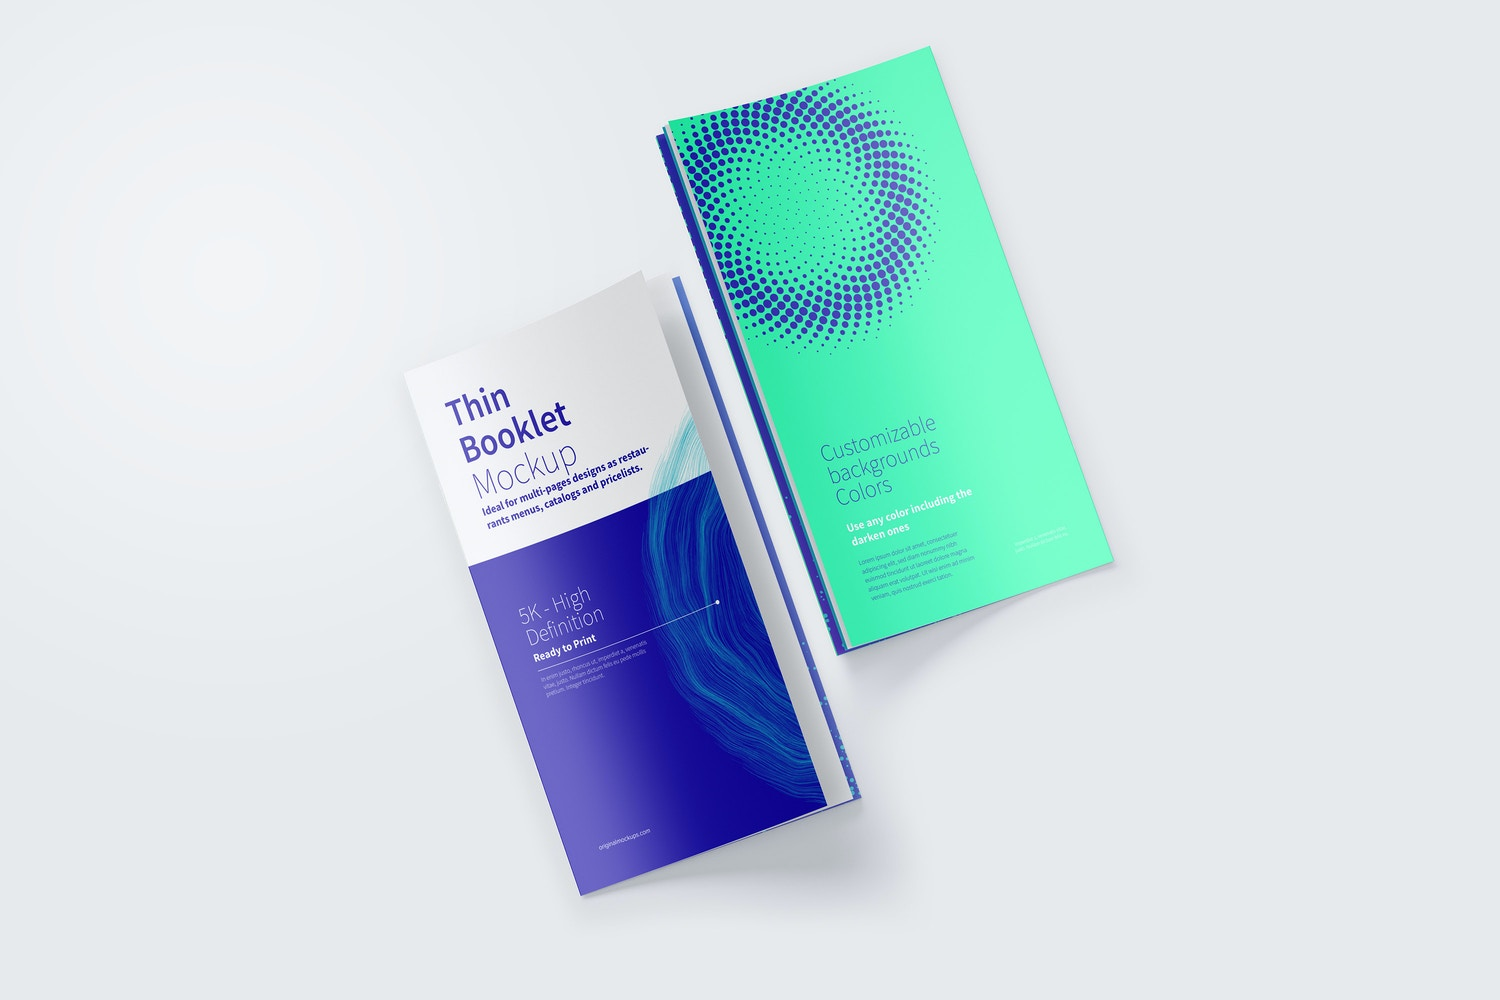 Thin Booklet Mockup 03 (1) by Original Mockups on Original Mockups